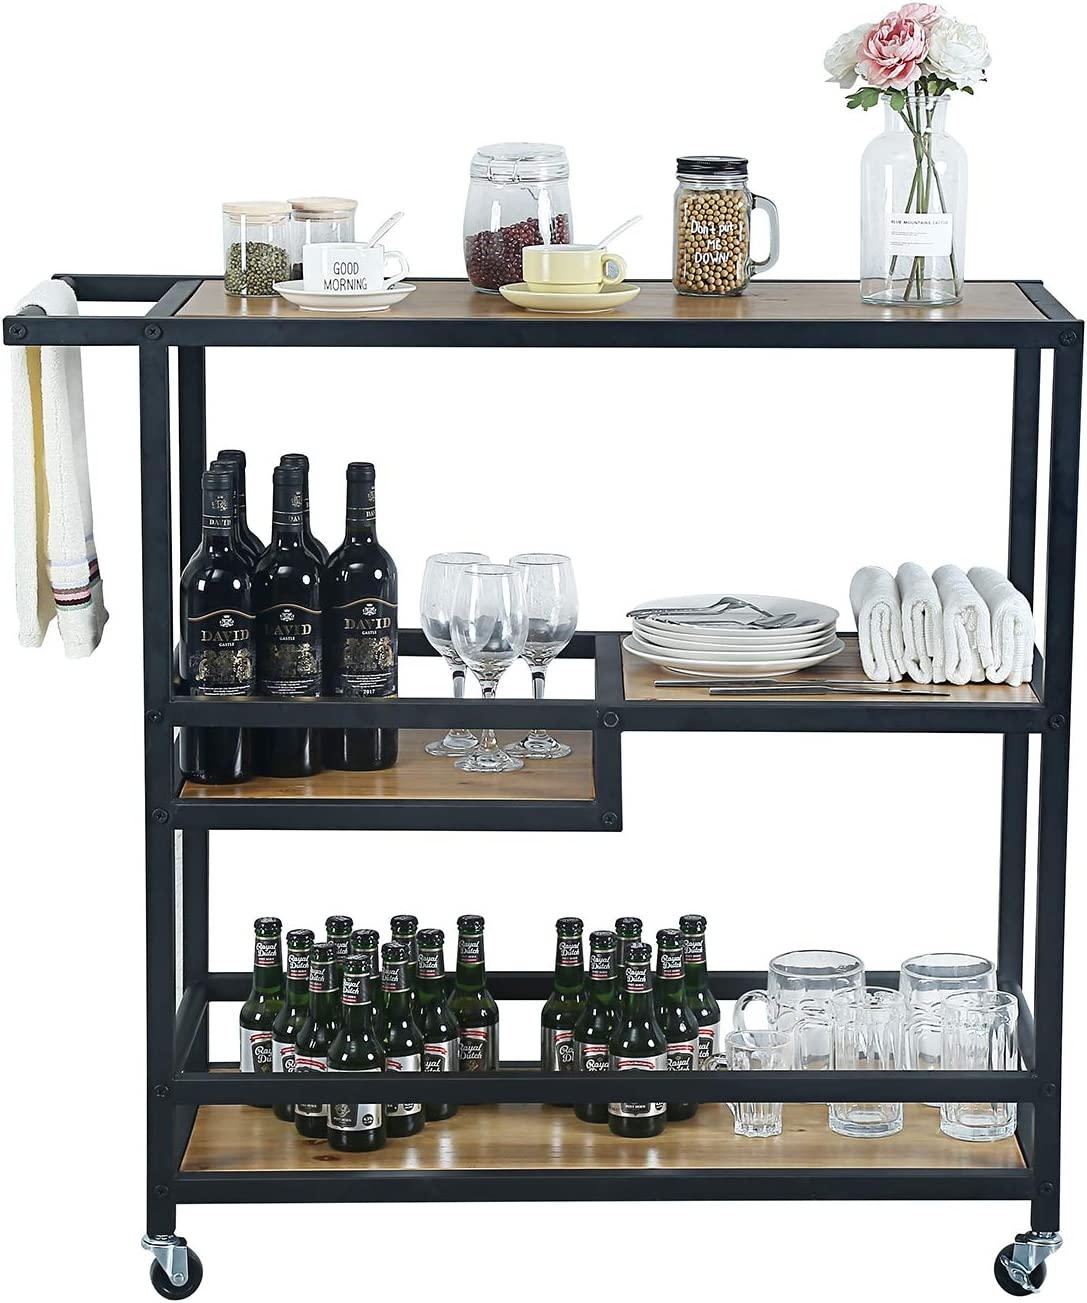 Weven Industrial Serving Cart, 3-Tier Kitchen Utility Cart on Wheels with Storage for Living Room, Wood Look Accent Furniture with Metal Frame